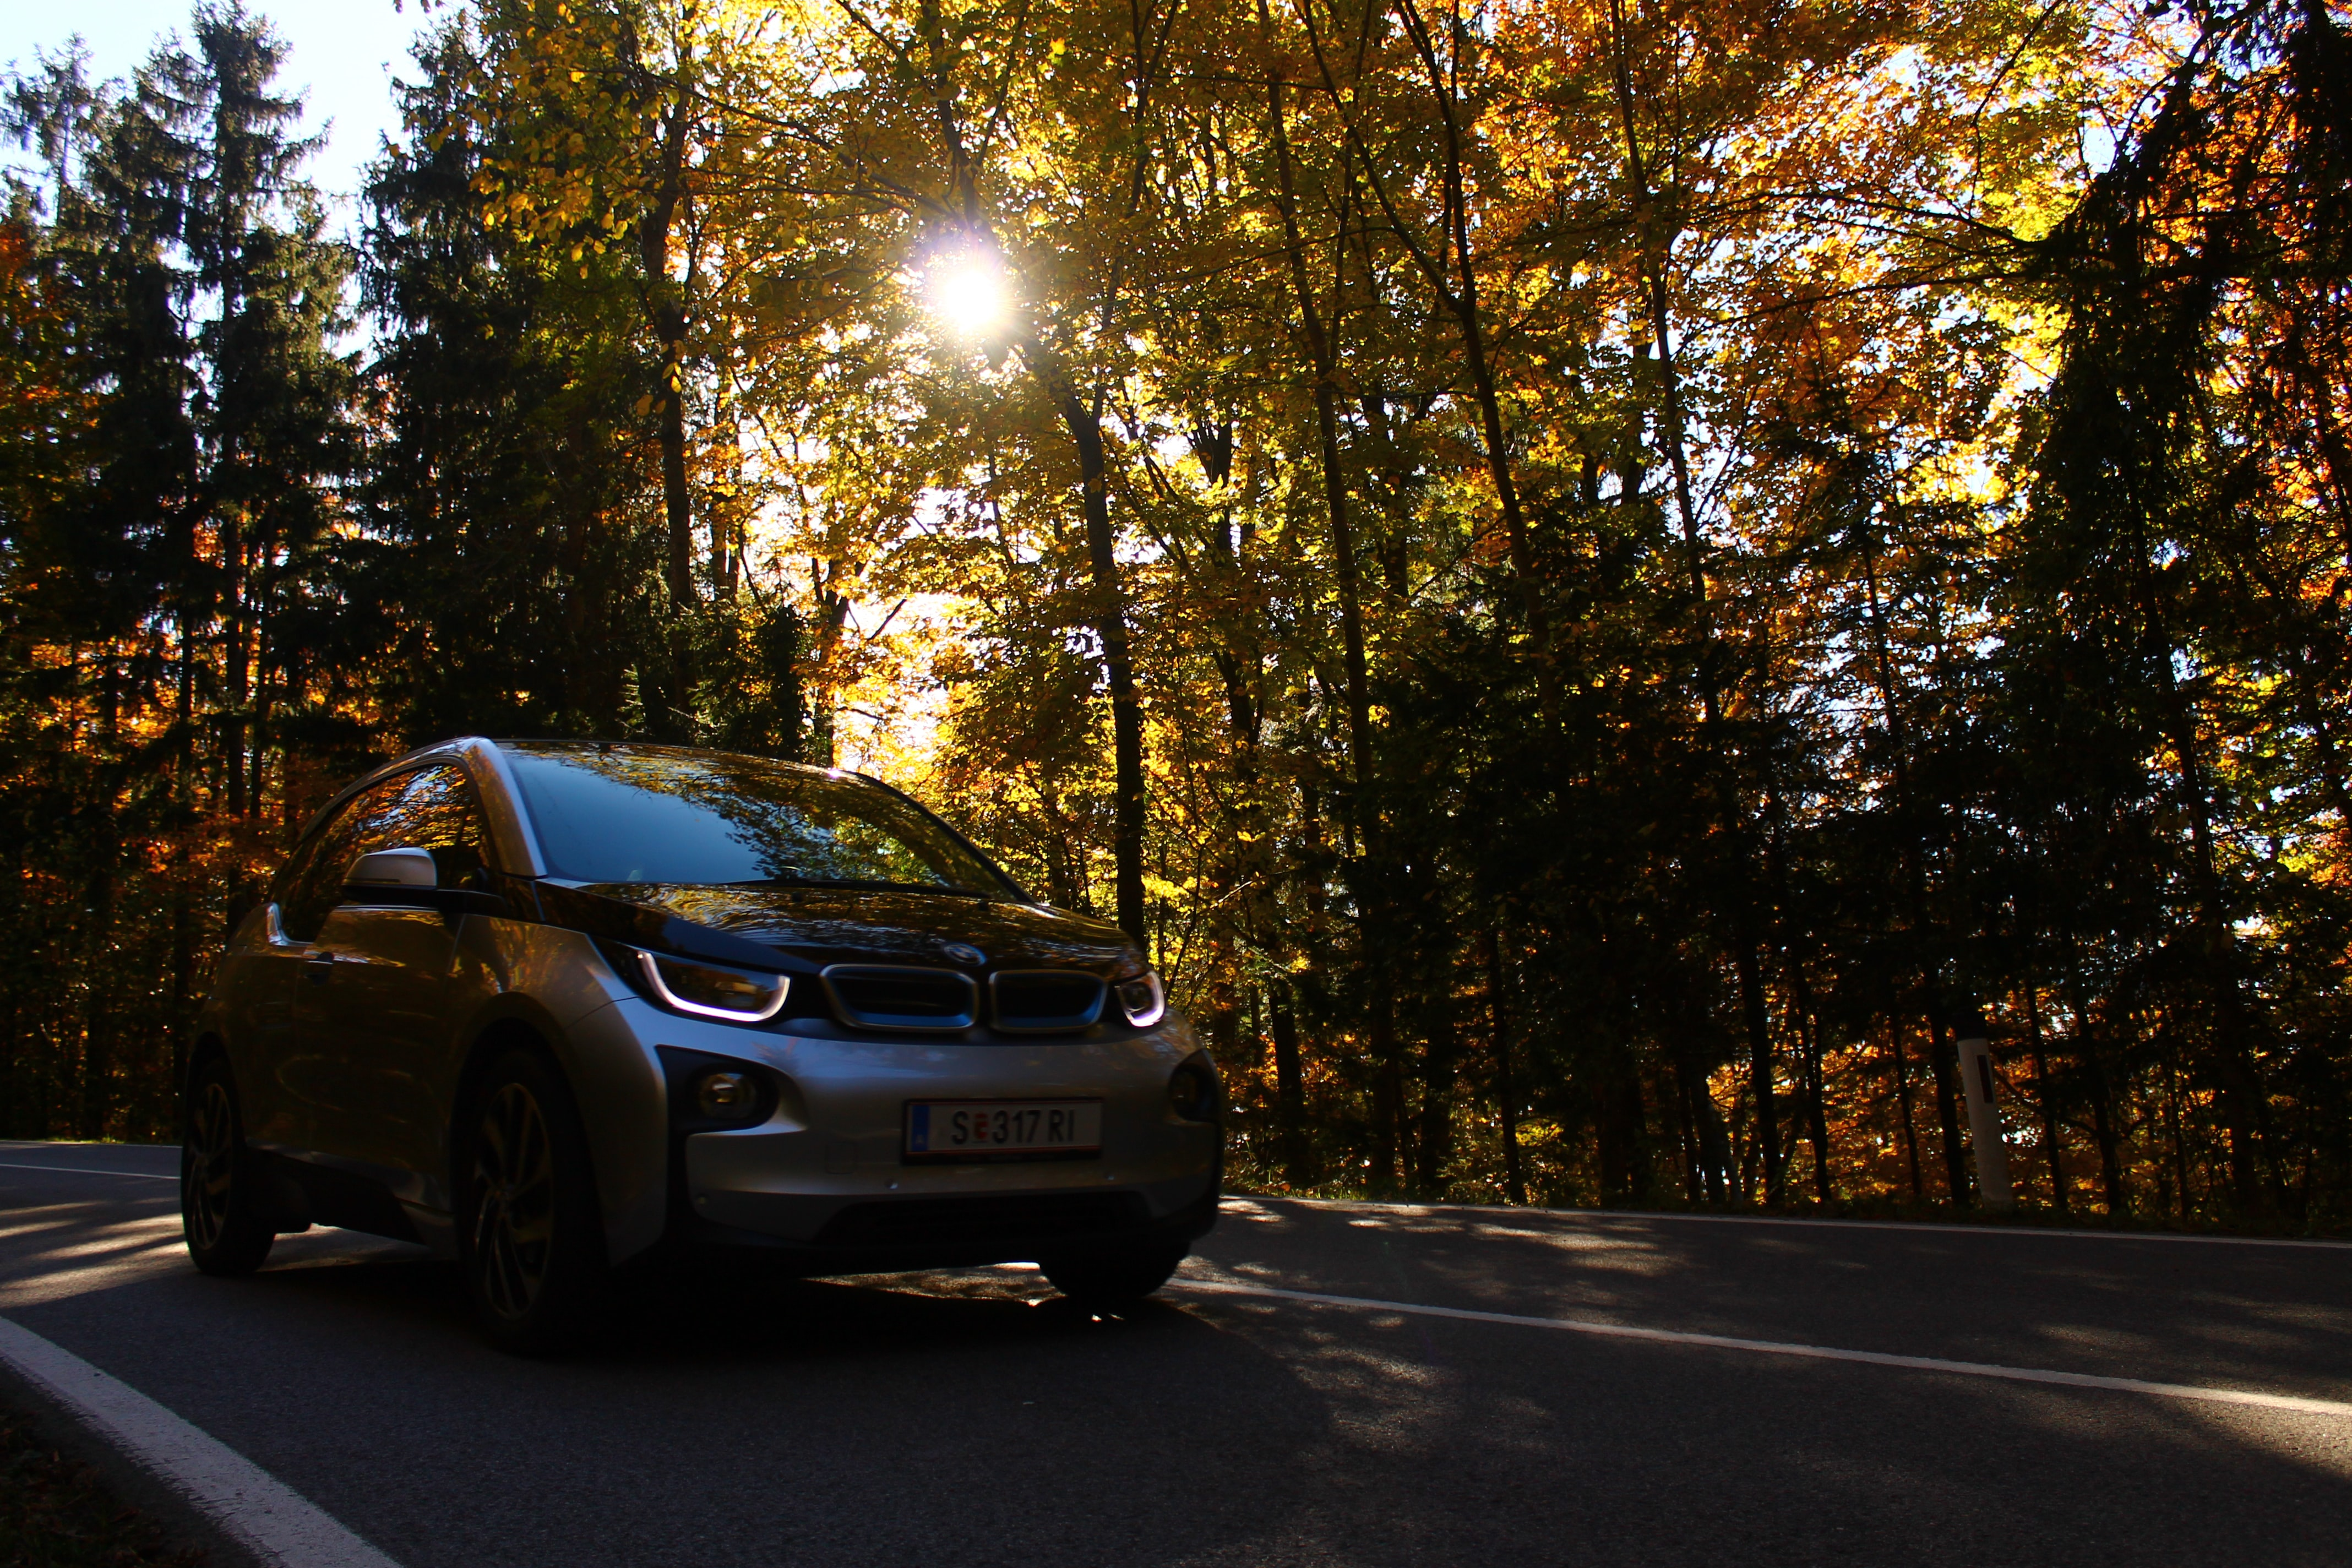 A dim shot of a small car driving on a road with sun breaking through the roadside trees